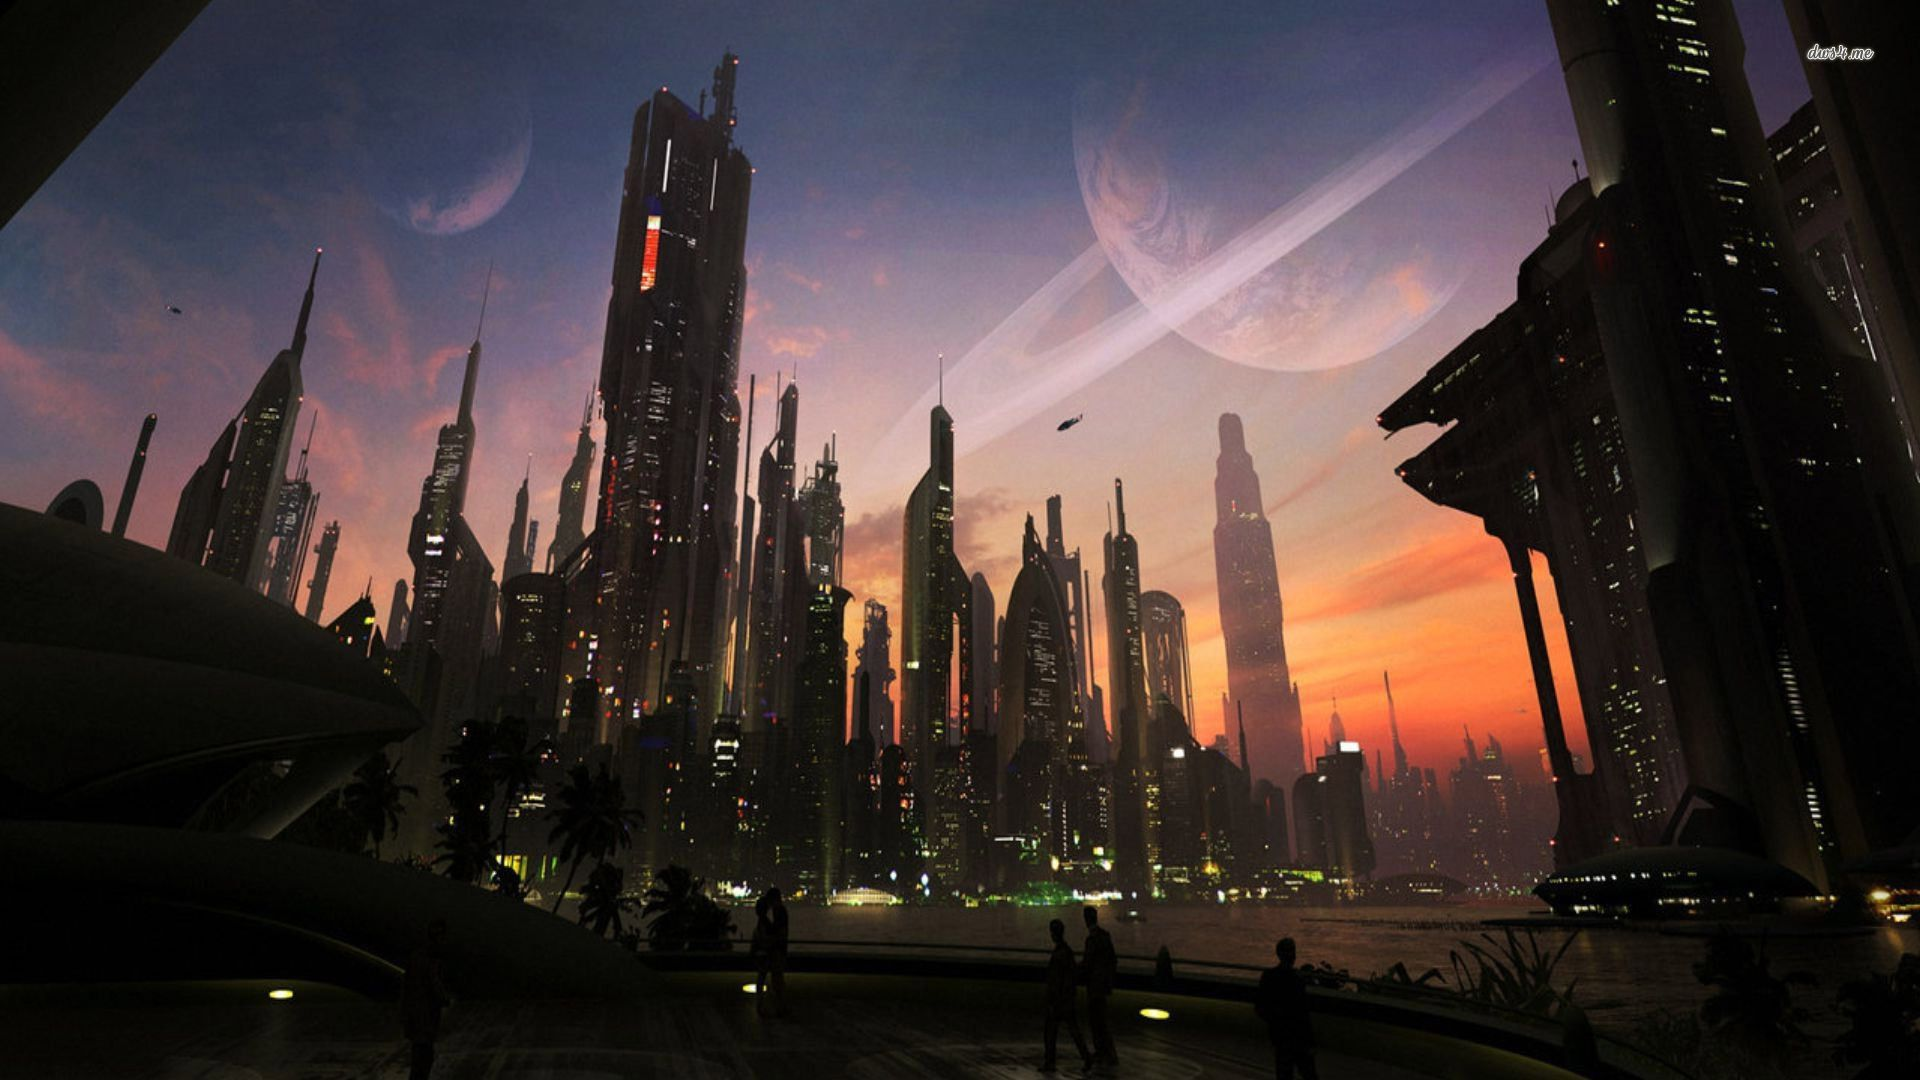 Futuristic City Fantasy Hd Wallpaper 12163 Jpg 1 920 1 080 Pixels Futuristic City Planets Wallpaper Cityscape Wallpaper